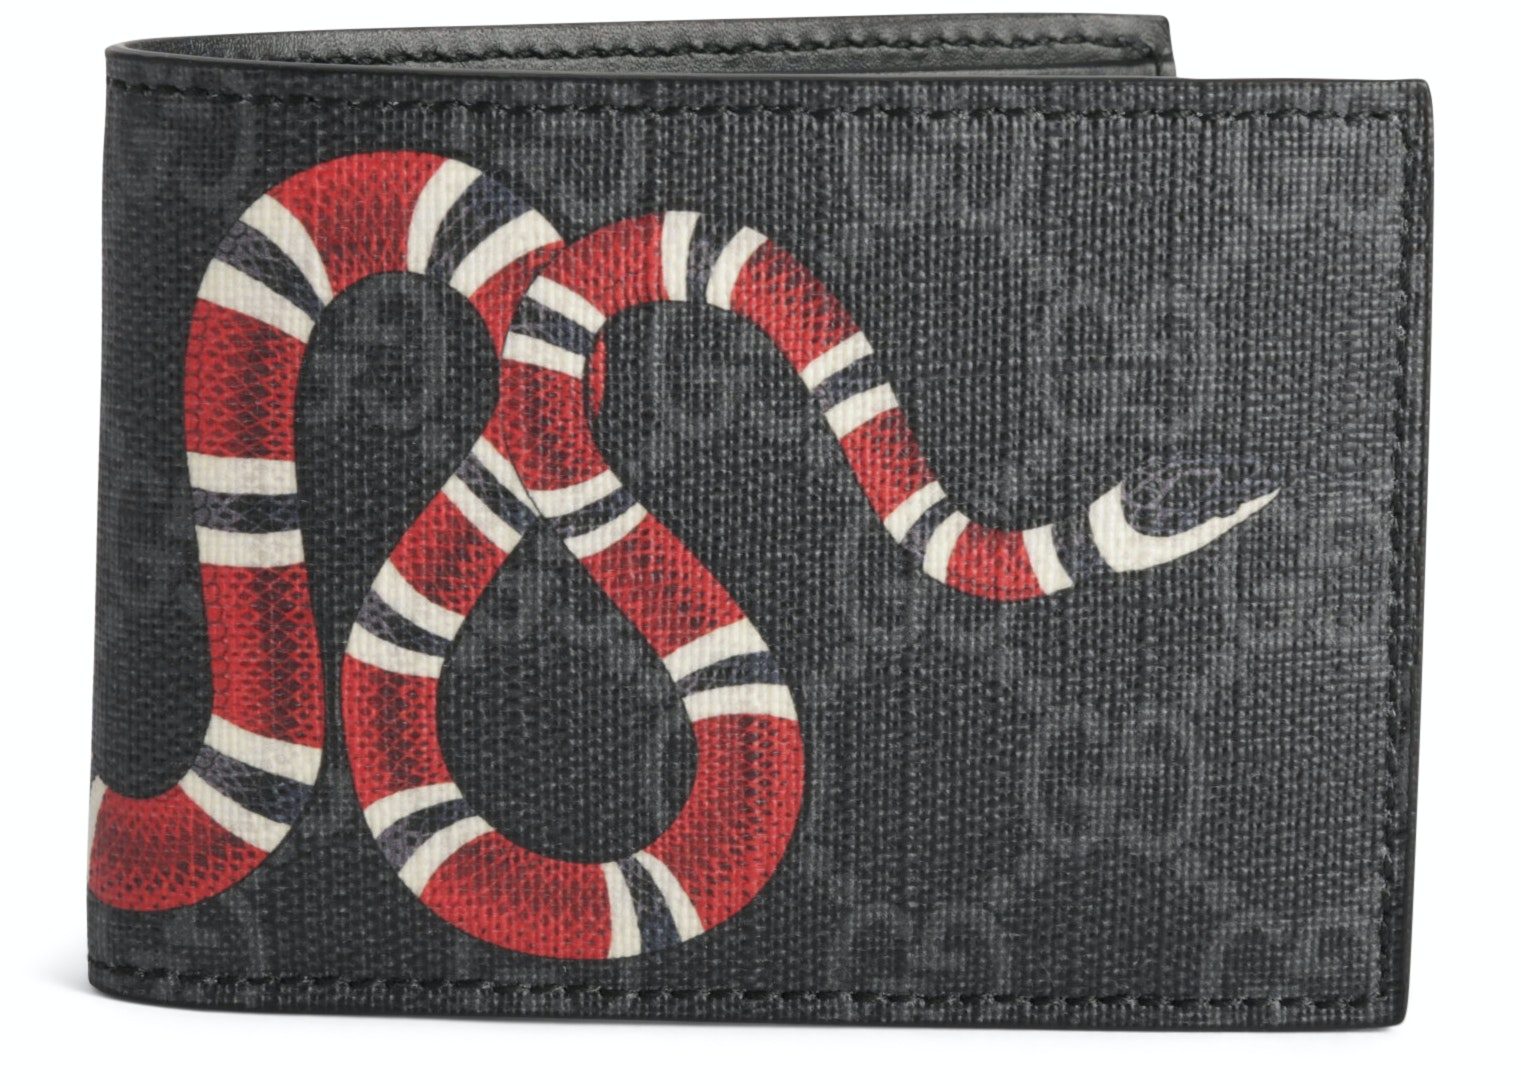 GG Supreme Kingsnake (4 Card Slots) Black